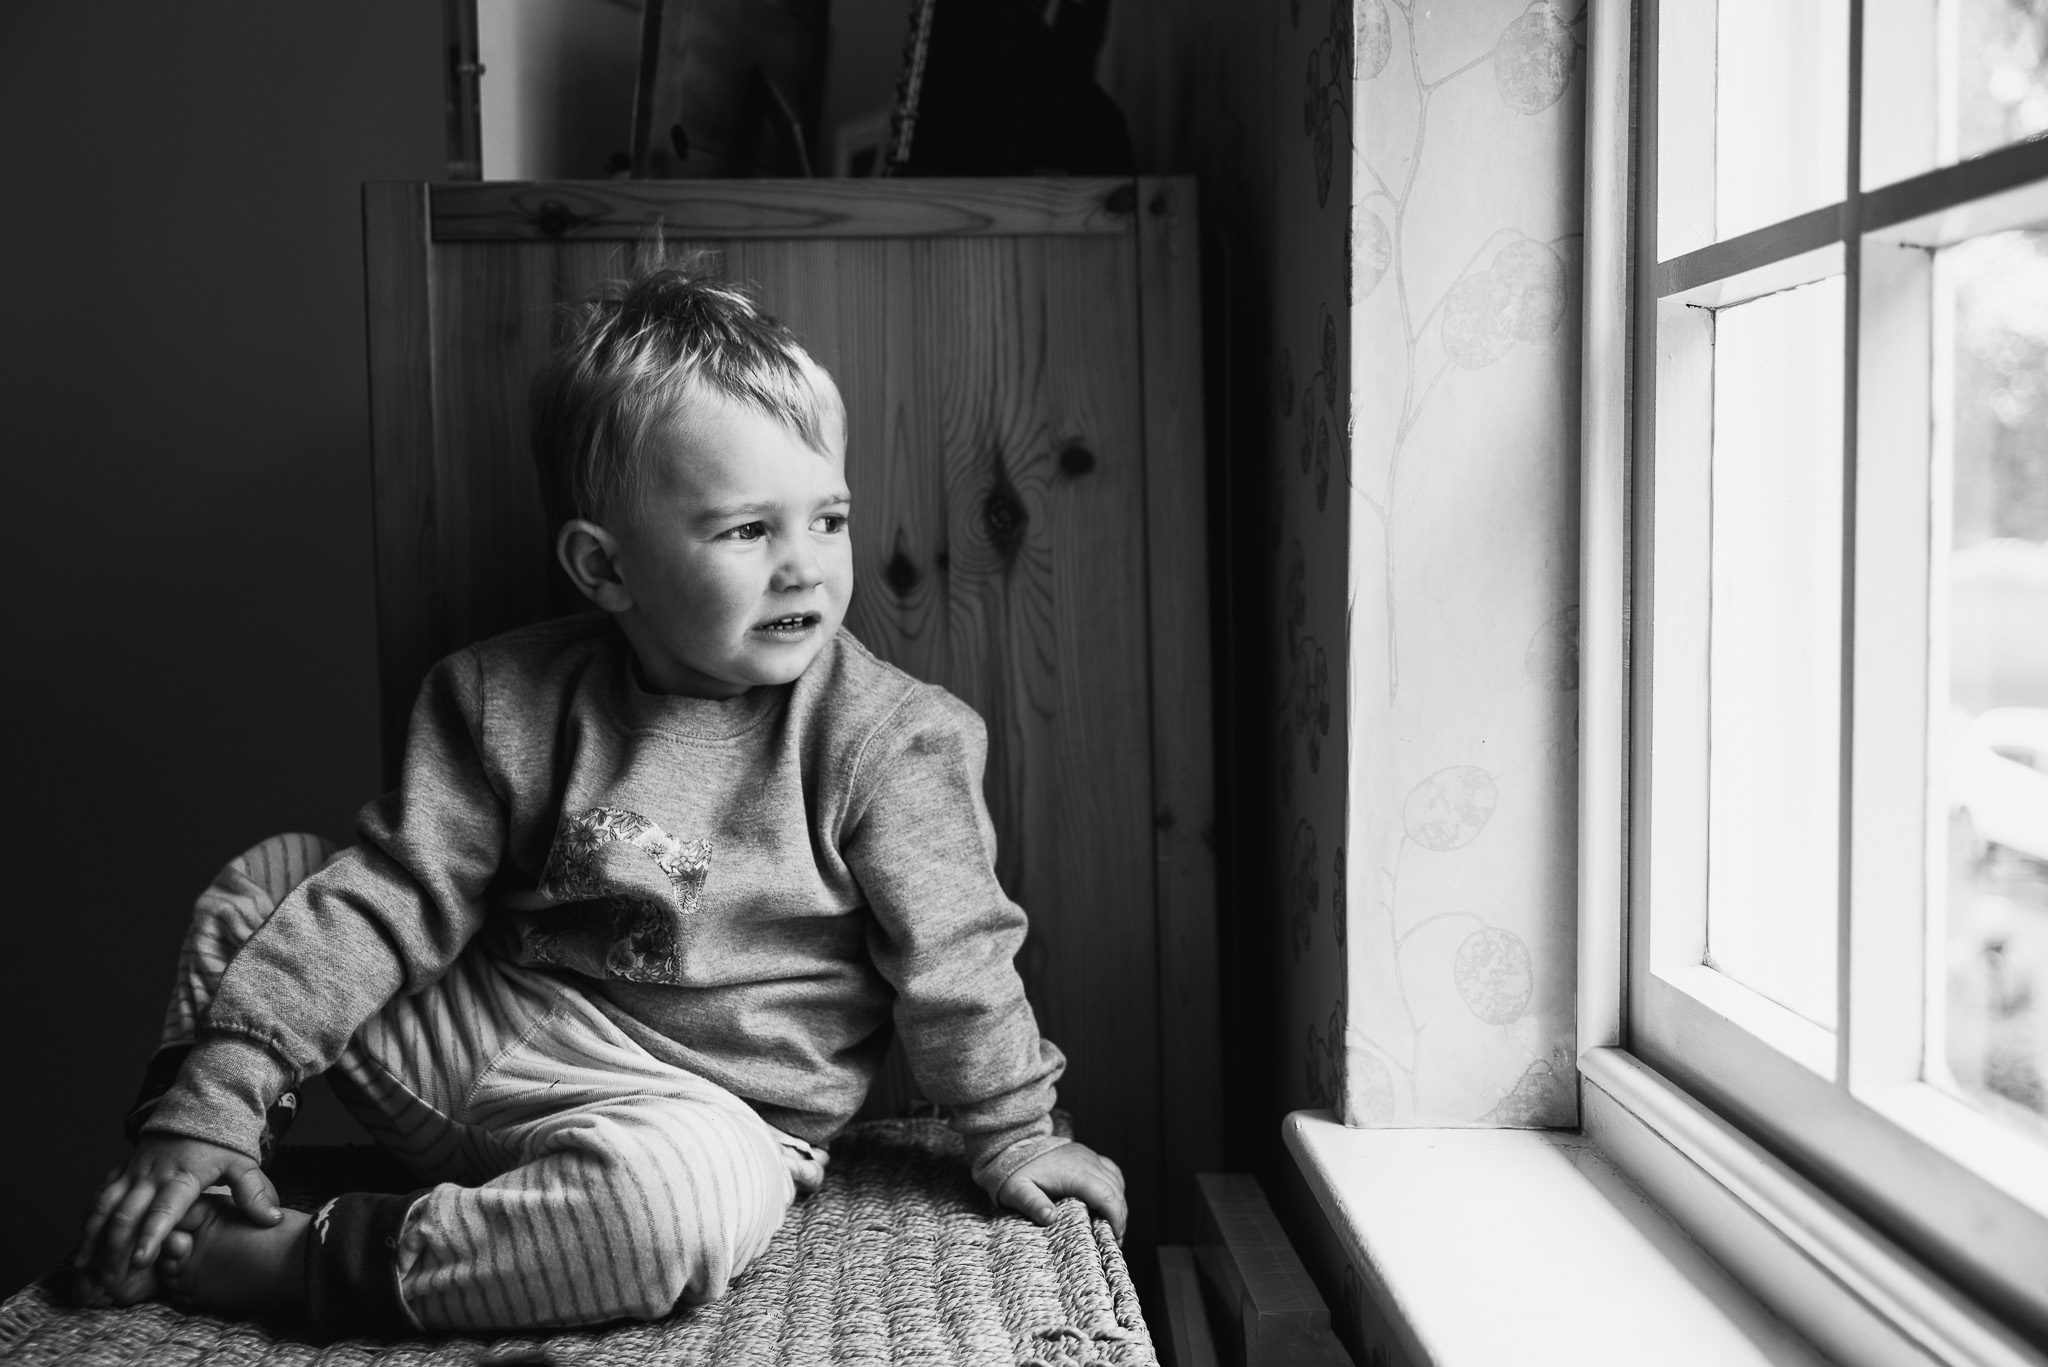 Toddler in window light.